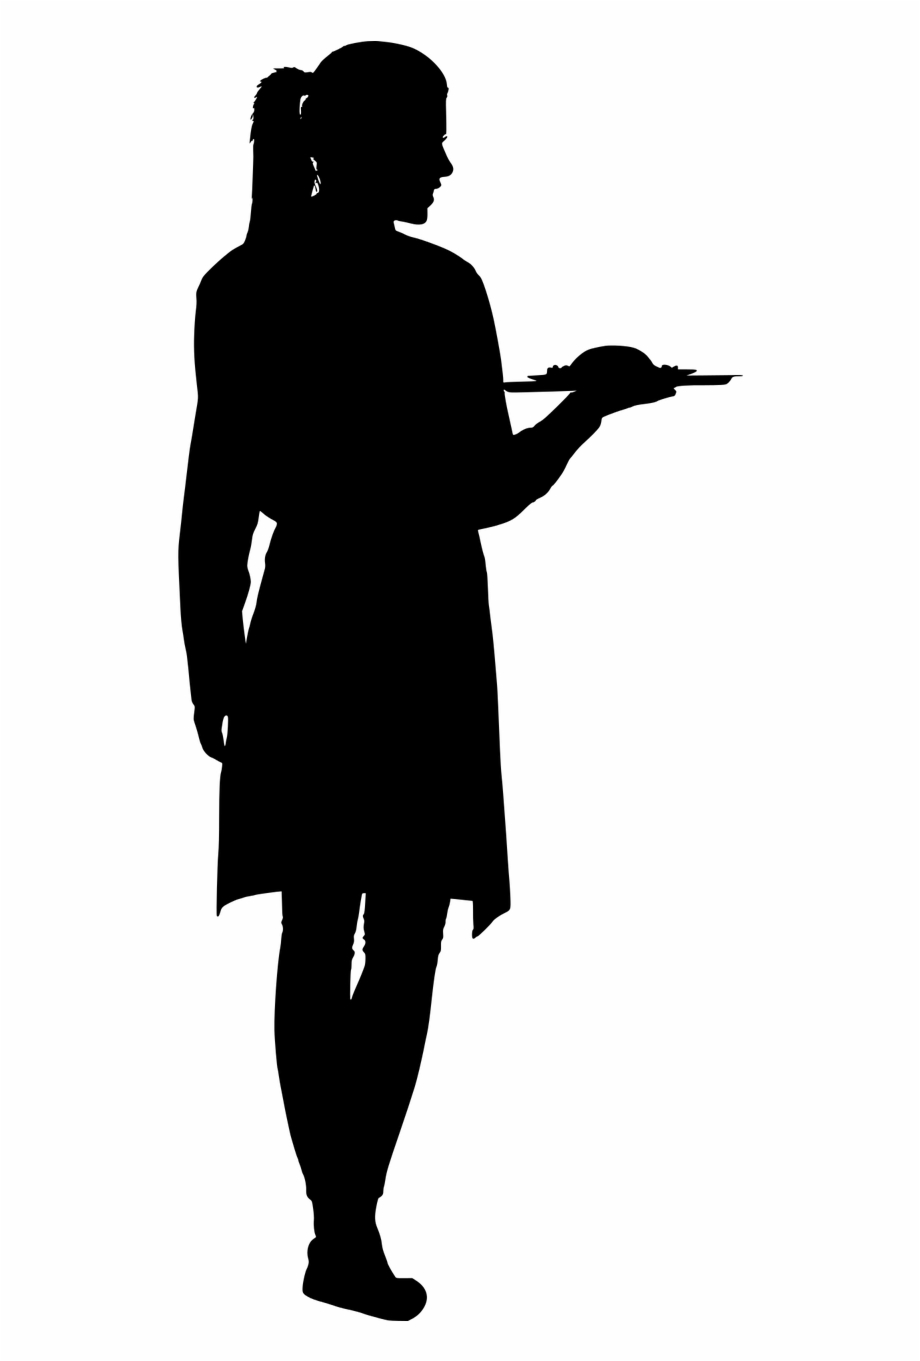 Woman silhouette cooking clipart picture free Silhouette Cooking Food - Silhouette Of Women Cooking Free ... picture free